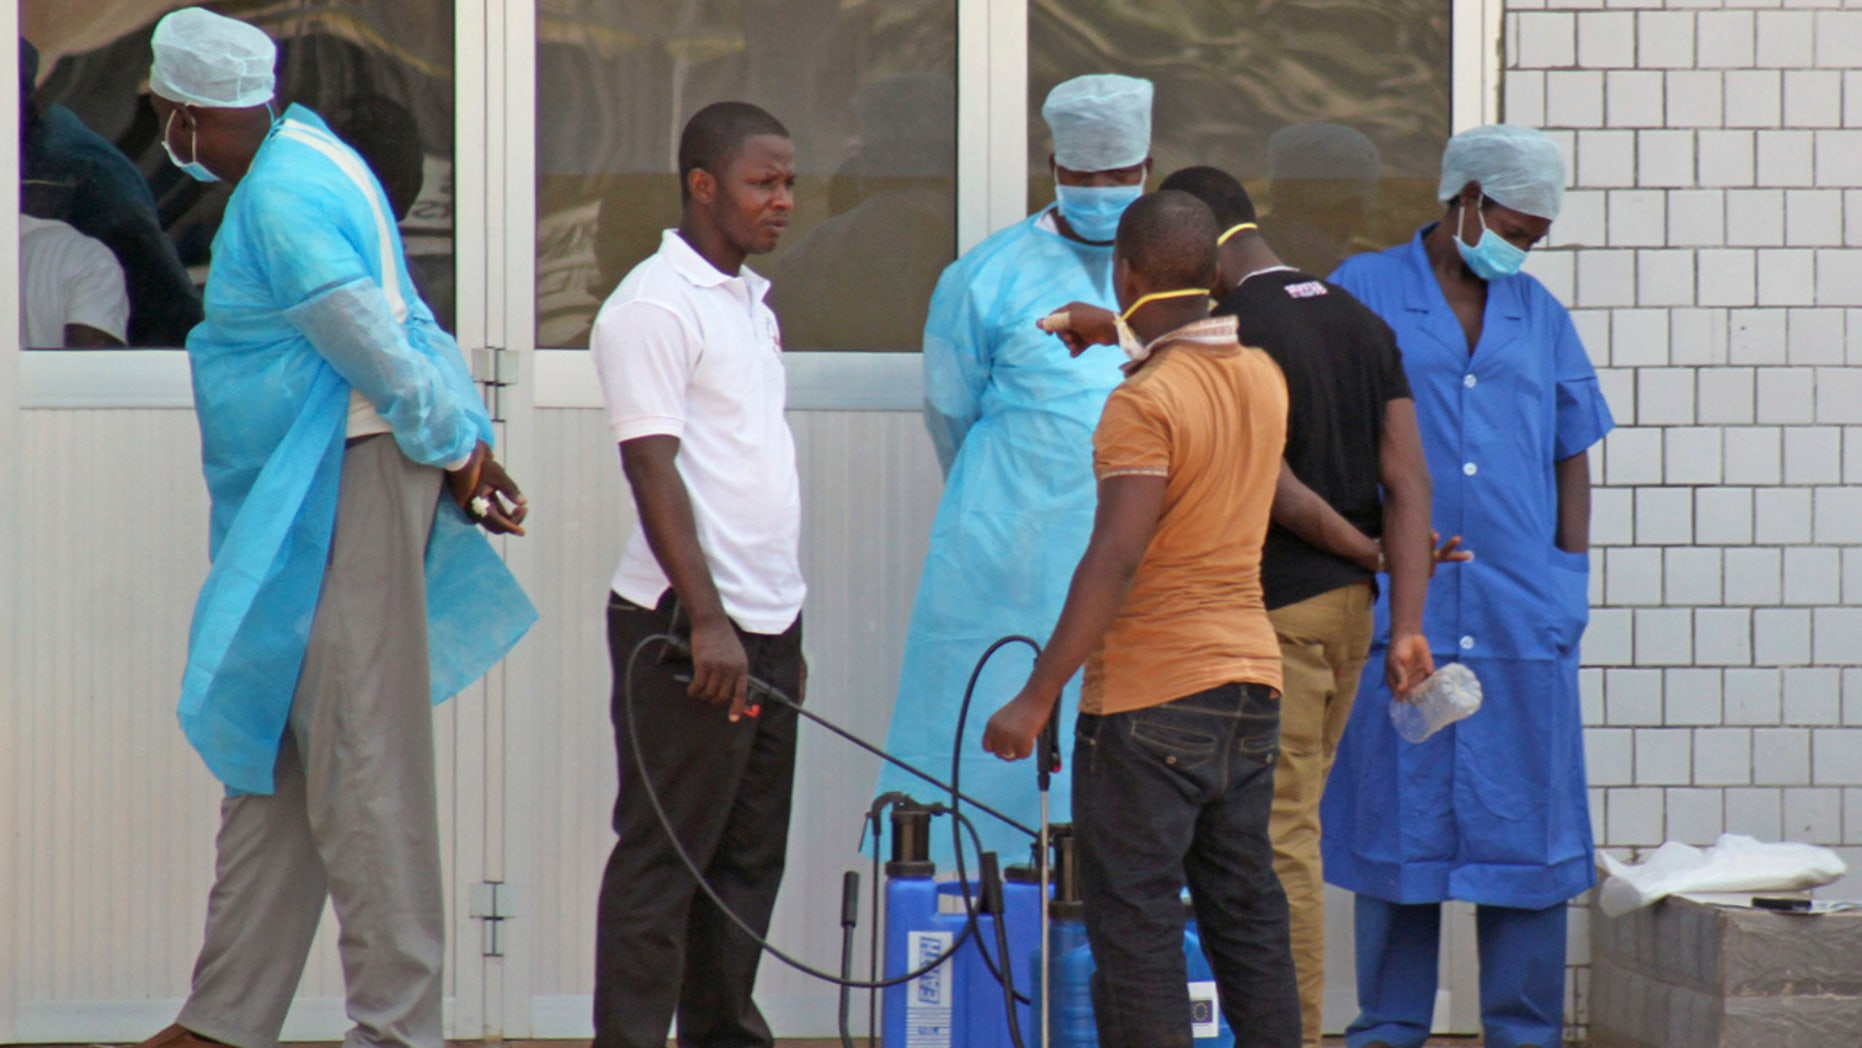 FILE - In this March 29, 2014, file photo, medical personnel at the emergency entrance of a hospital wait to receive suspected Ebola virus patients in Conakry, Guinea.